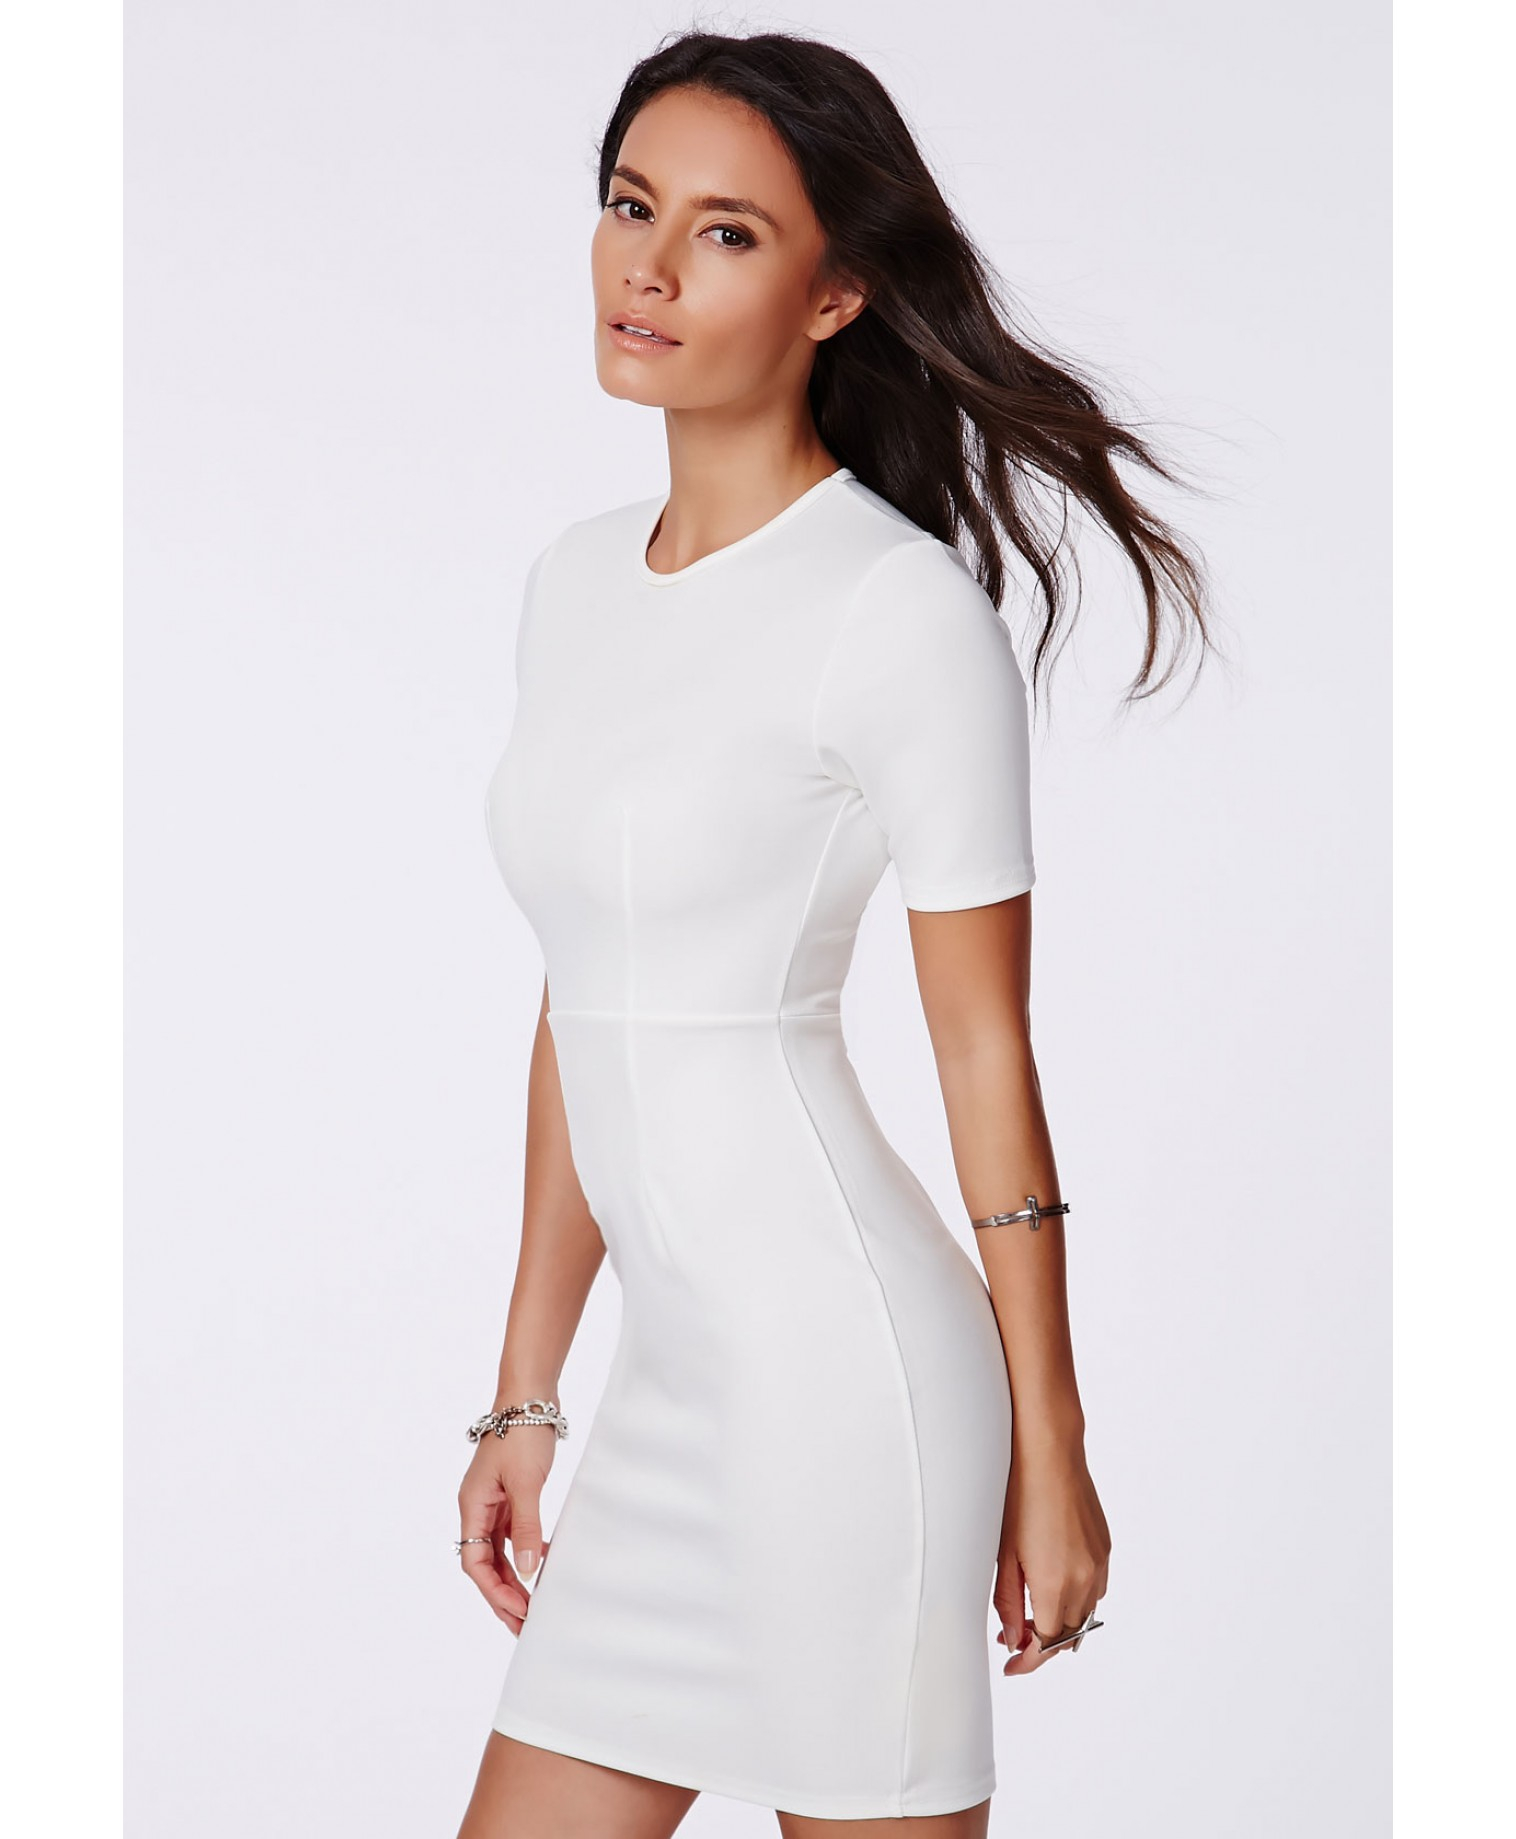 Missguided Aushi White Fitted Bodycon Mini Dress in White | Lyst